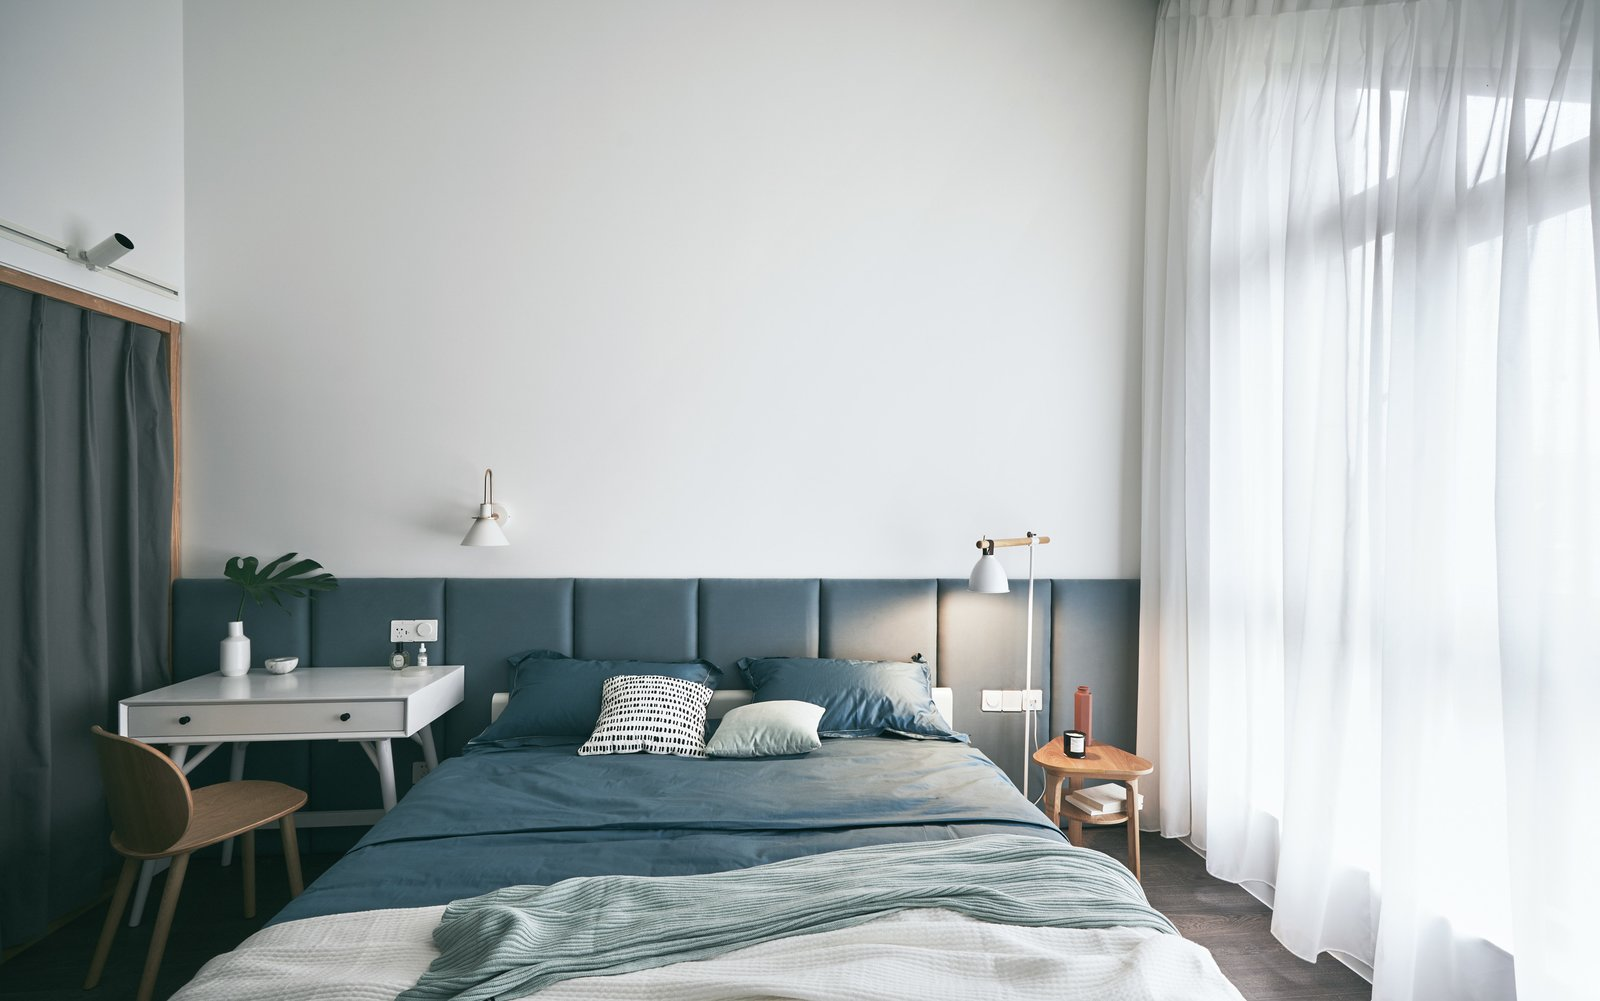 Bedroom, Bed, Chair, Wall, Floor, Night Stands, and Medium Hardwood The choice of colors and materials work together to create a bright, cheerful, and romantic atmosphere.    Bedroom Medium Hardwood Floor Wall Photos from A Loft Mezzanine Cleverly Enlarges This Small Beijing Flat